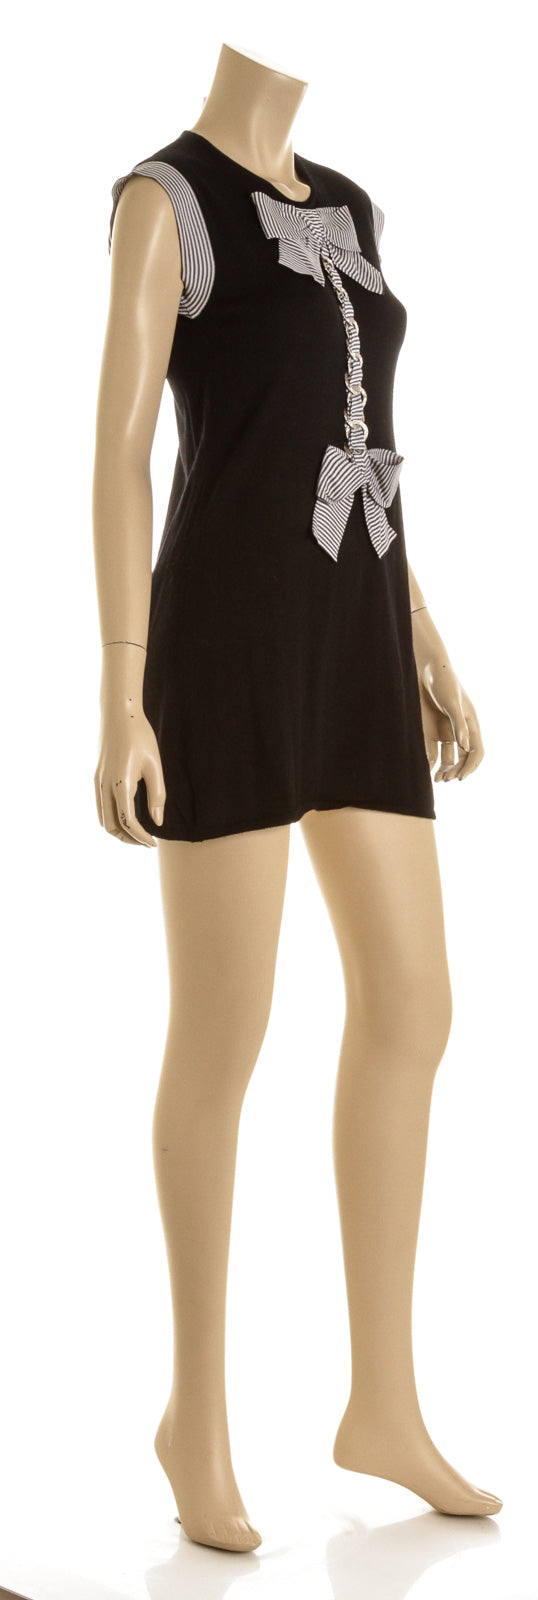 Chanel Black Cashmere Silk Bow And Chain Sweater Mini Dress ( Size 40)